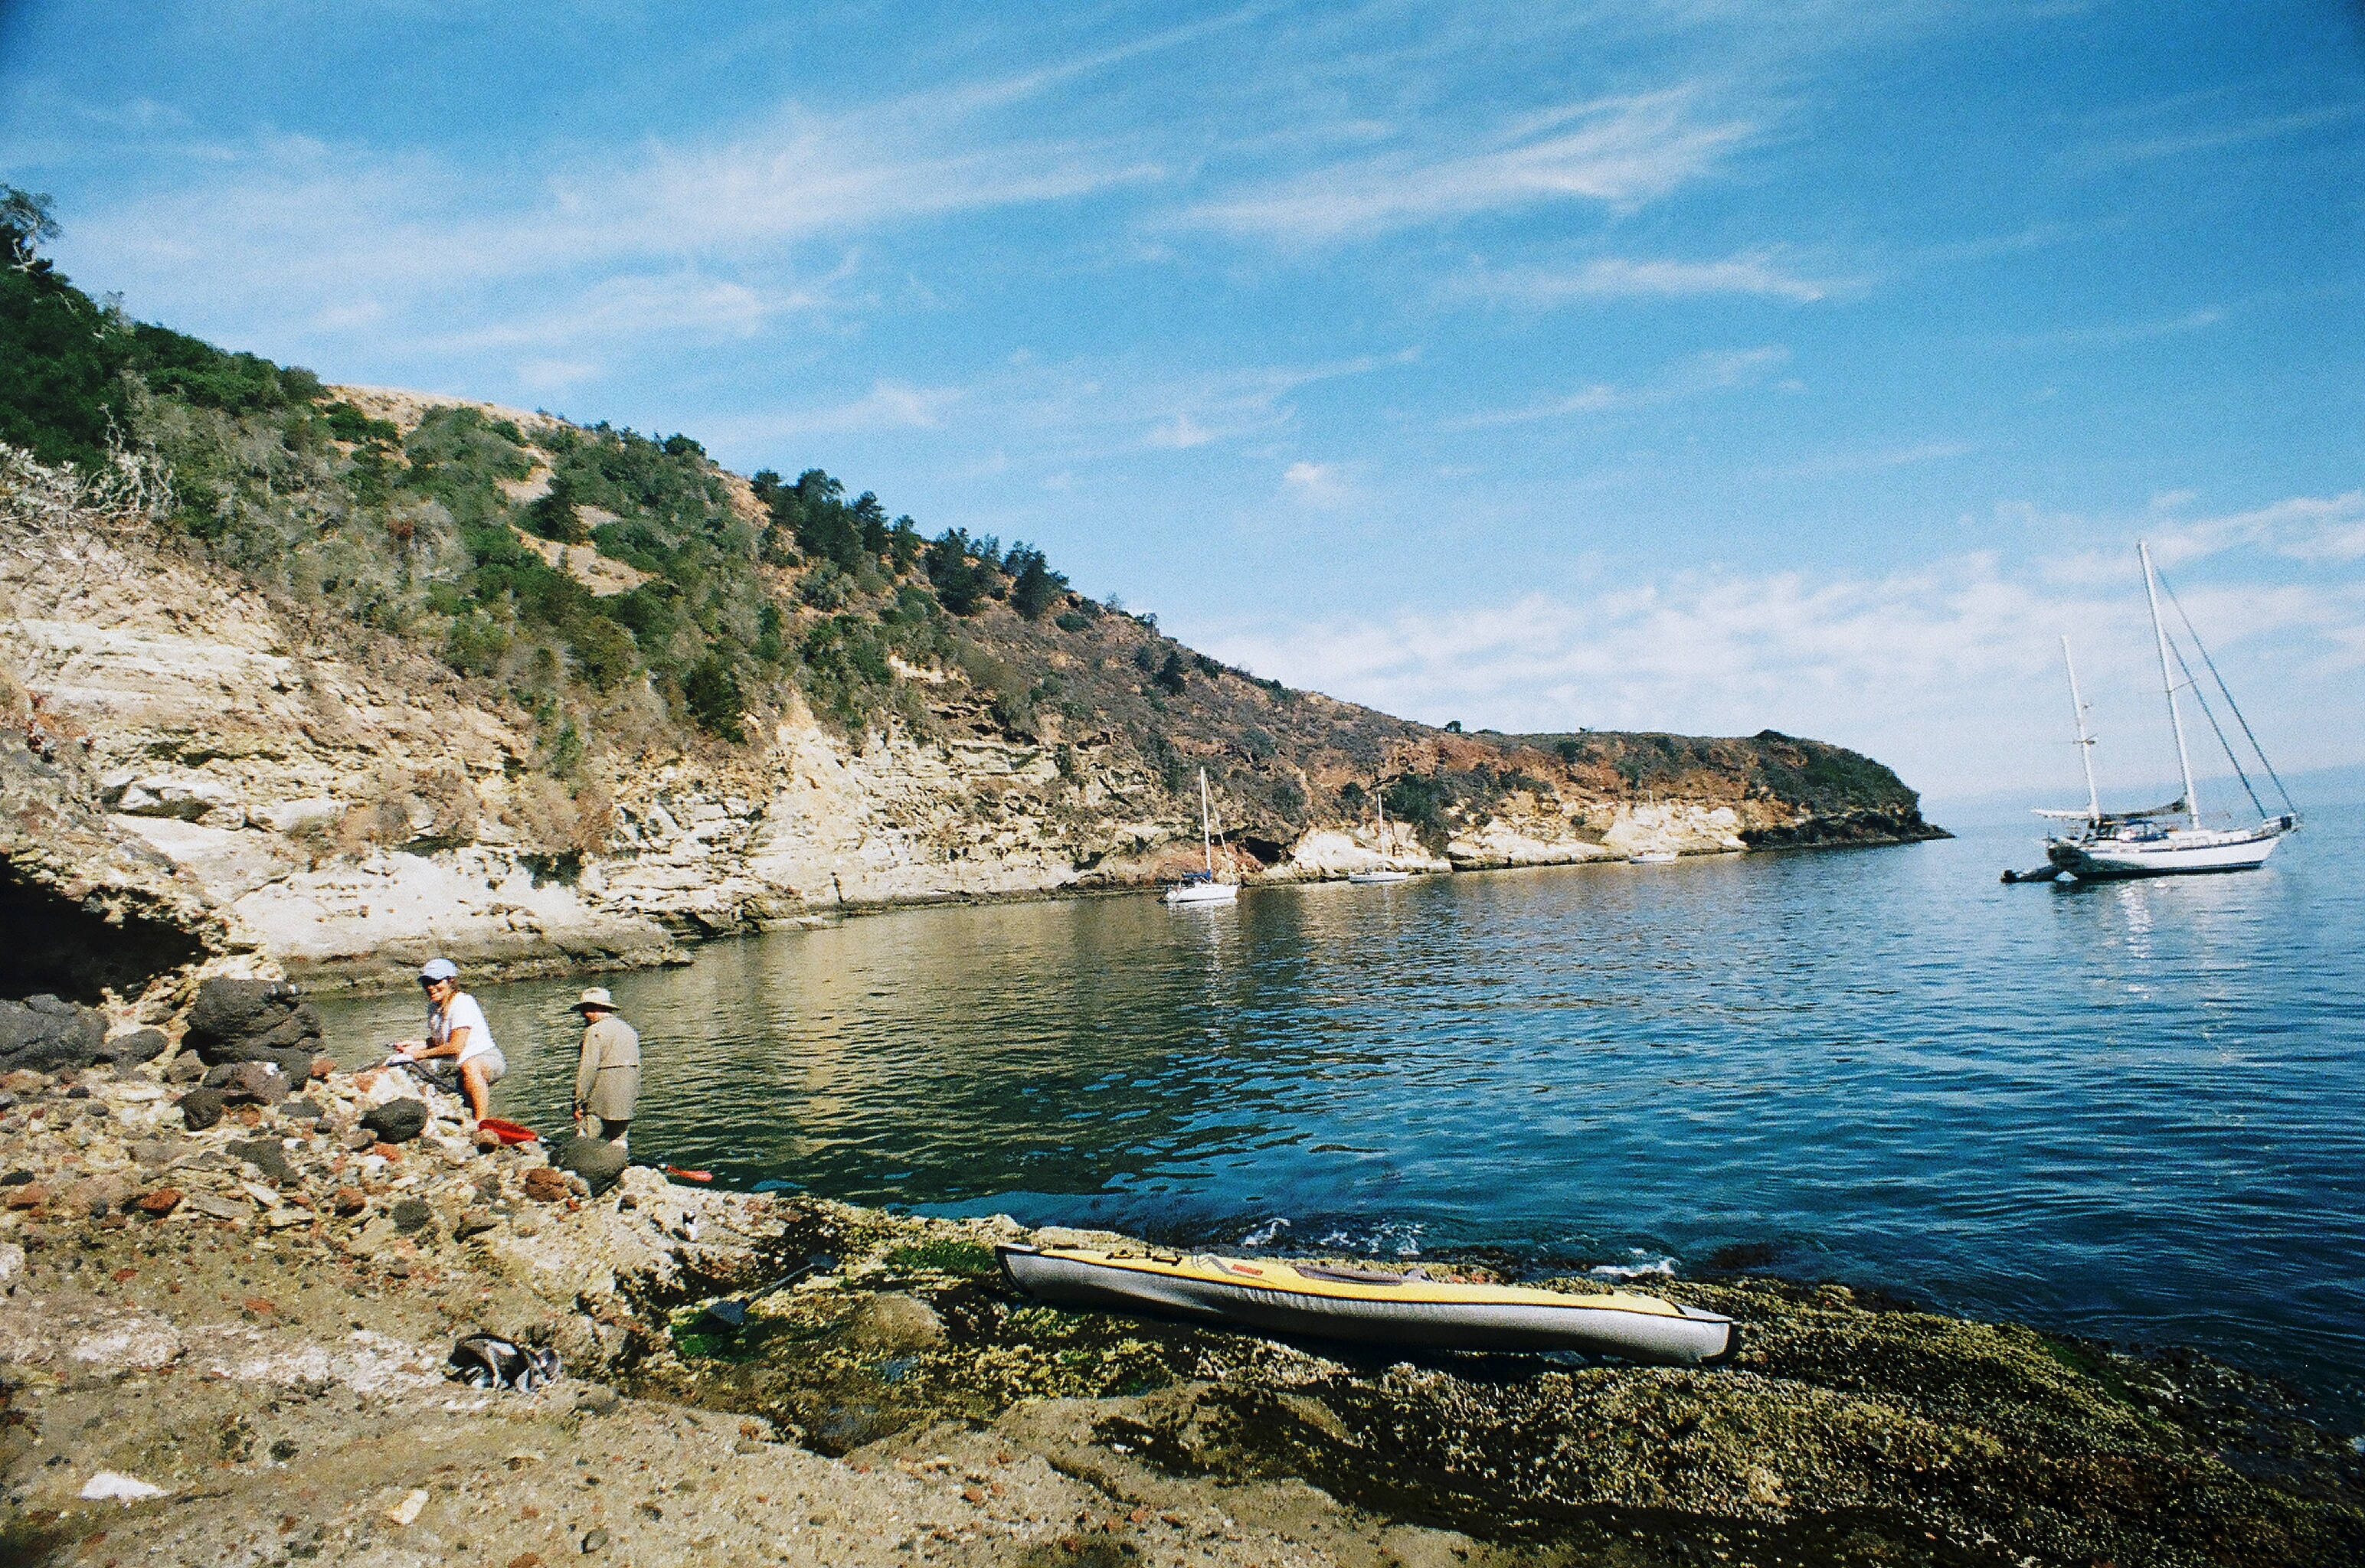 A view of Pelican Bay Anchorage from Santa Cruz Island